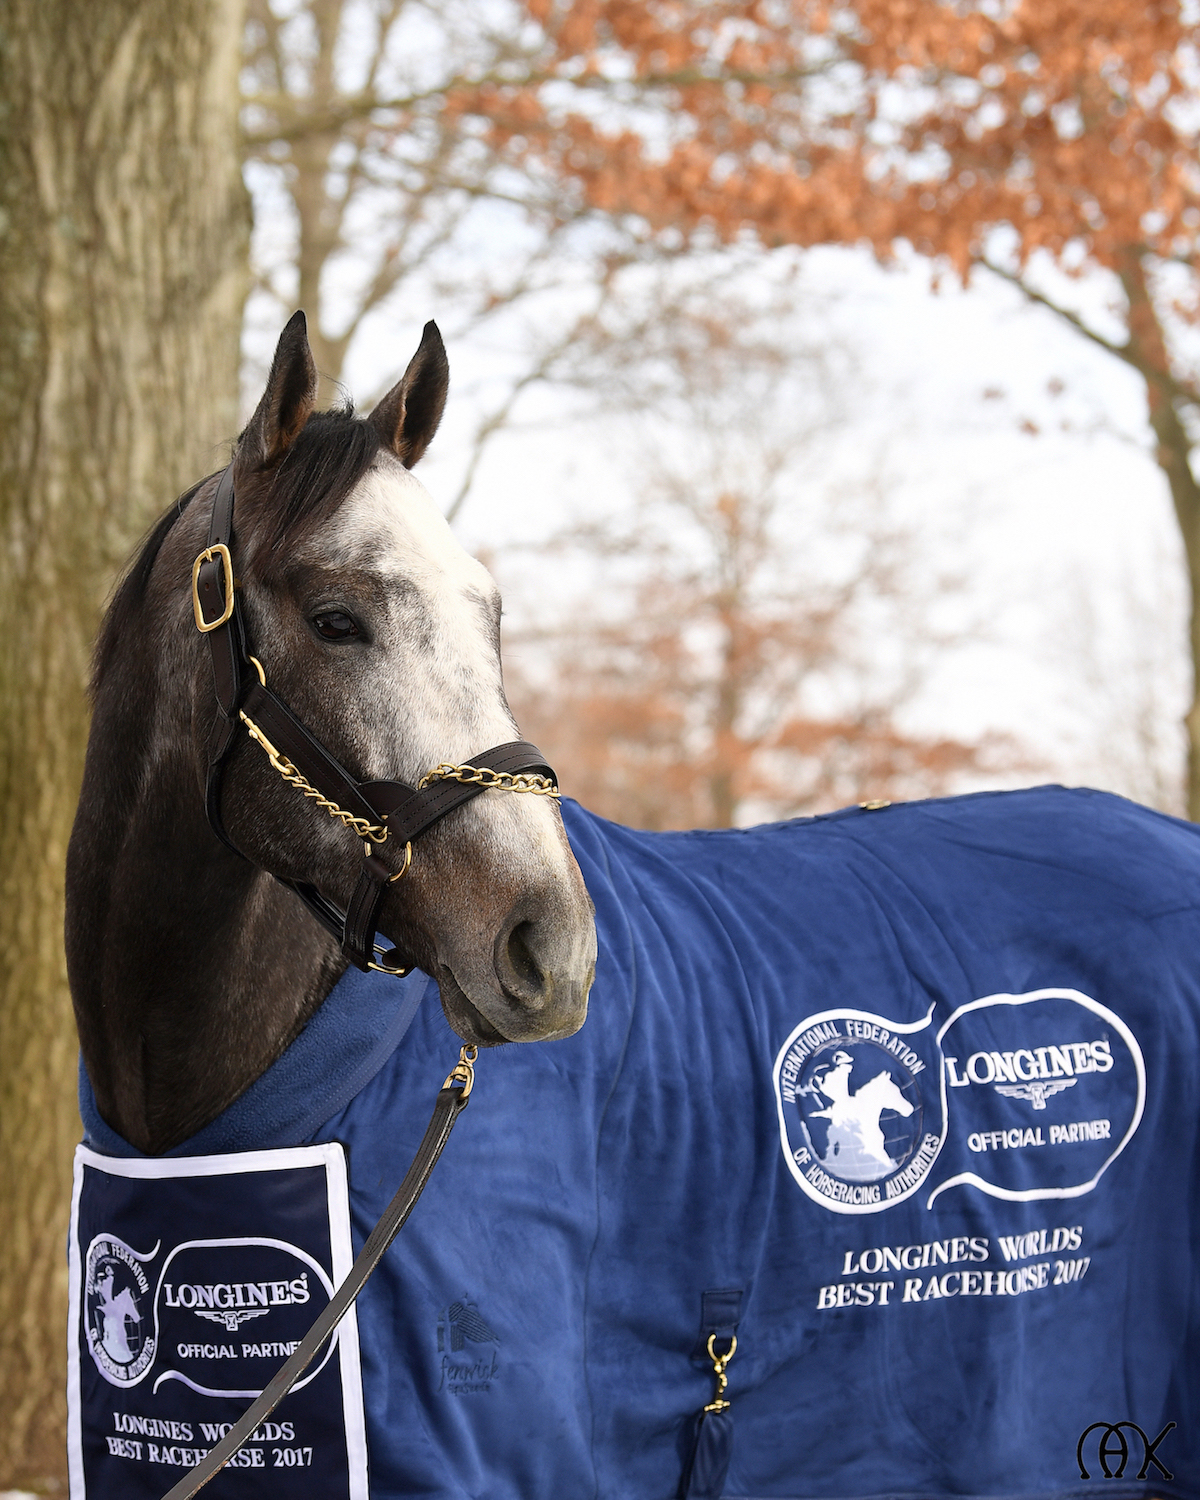 Arrogate S Journey From The Record Books To A New Life As